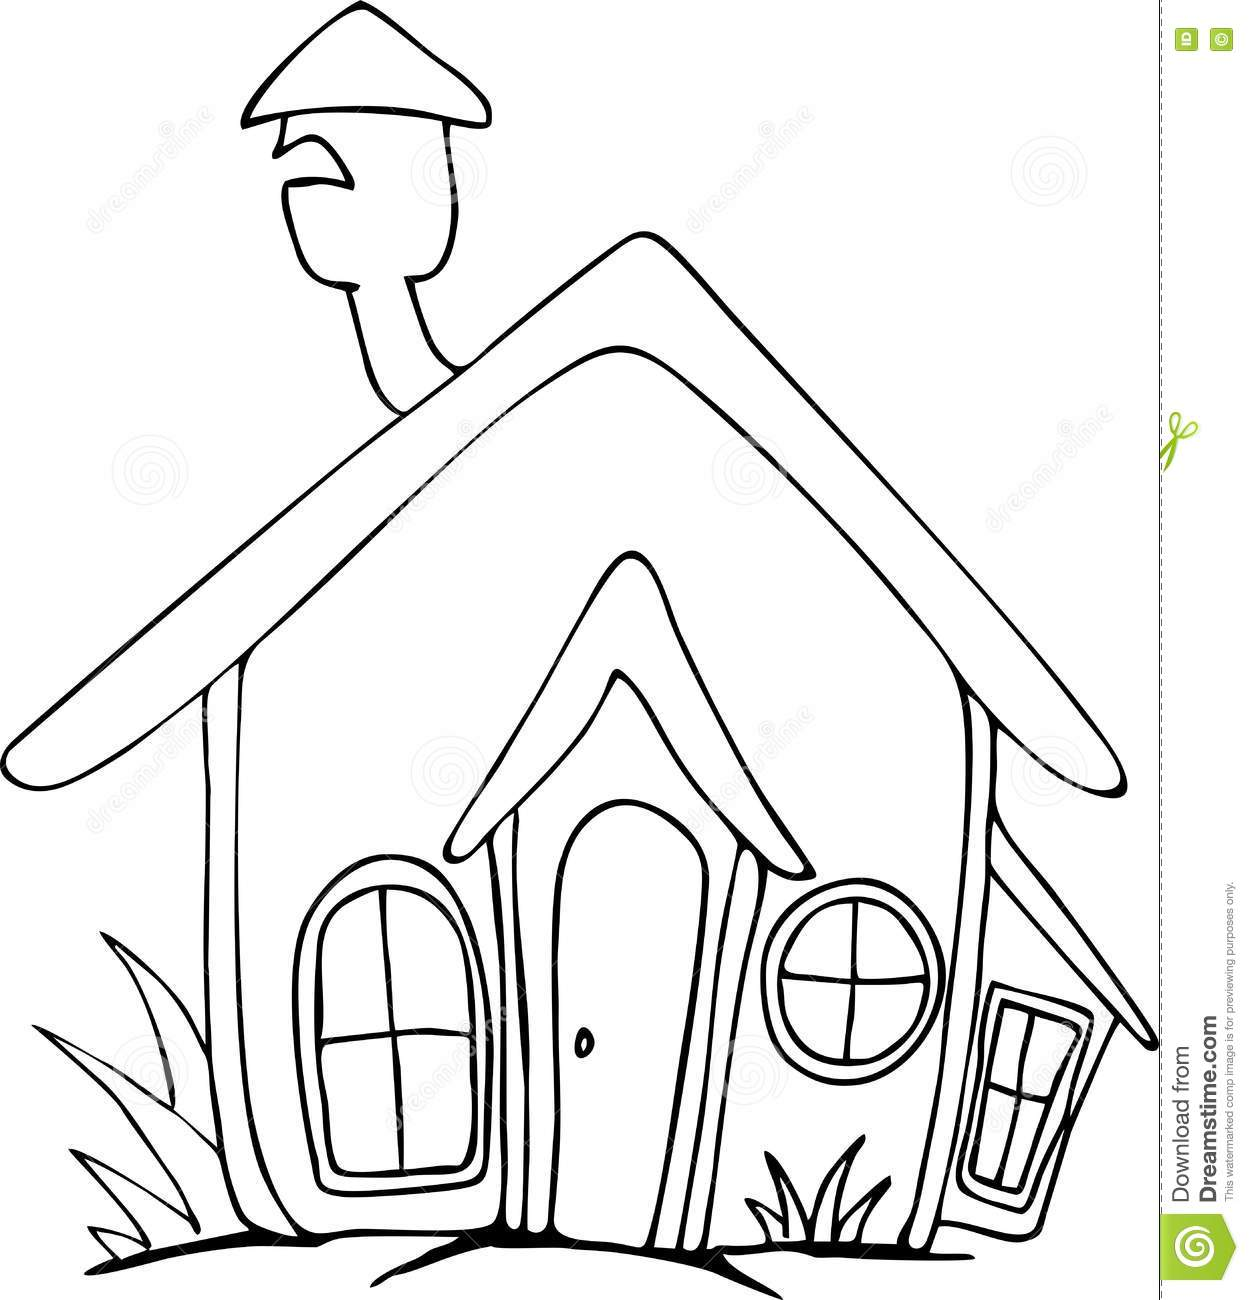 freehand drawn cartoon house stock vector illustration of block Black and White Cartoon Skeleton doodle freehand drawn cartoon house